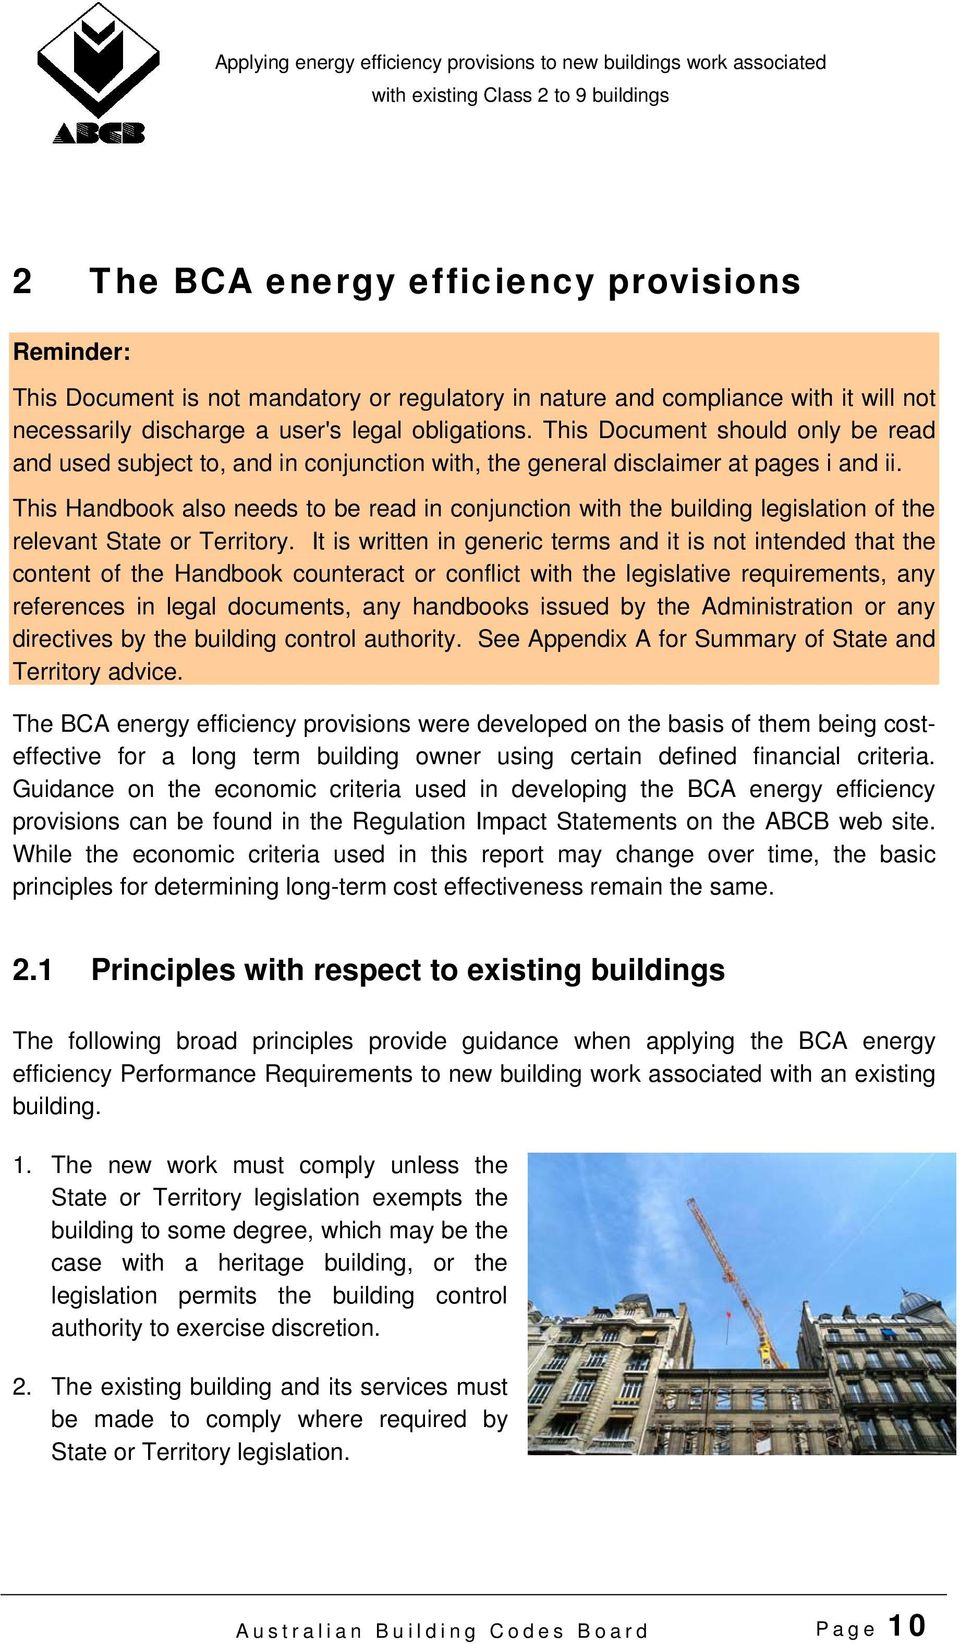 This Handbook also needs to be read in conjunction with the building legislation of the relevant State or Territory.